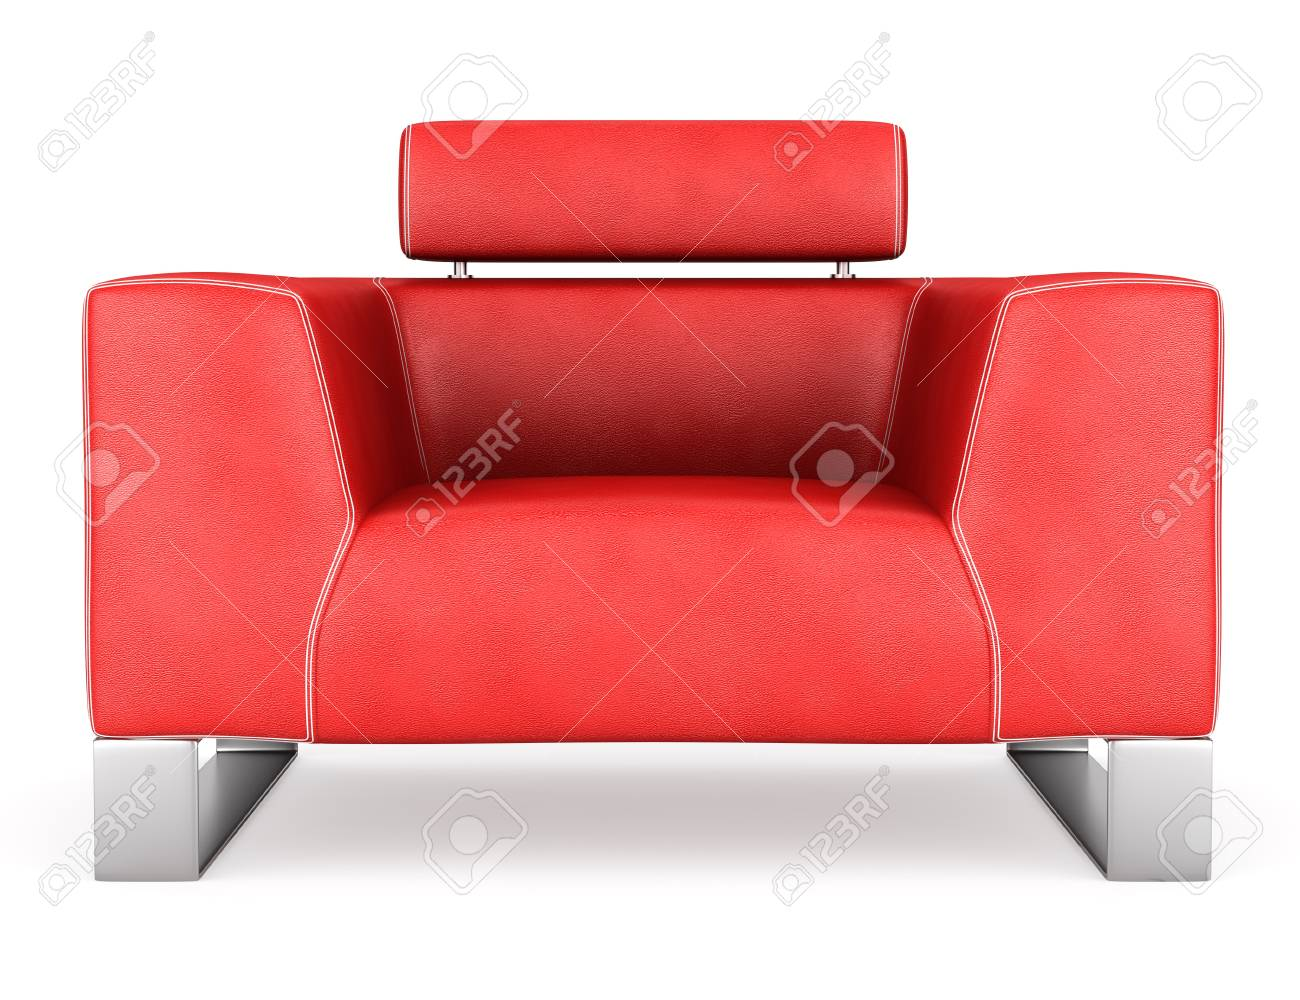 Peachy Modern Red Leather Armchair Isolated On White Background Machost Co Dining Chair Design Ideas Machostcouk